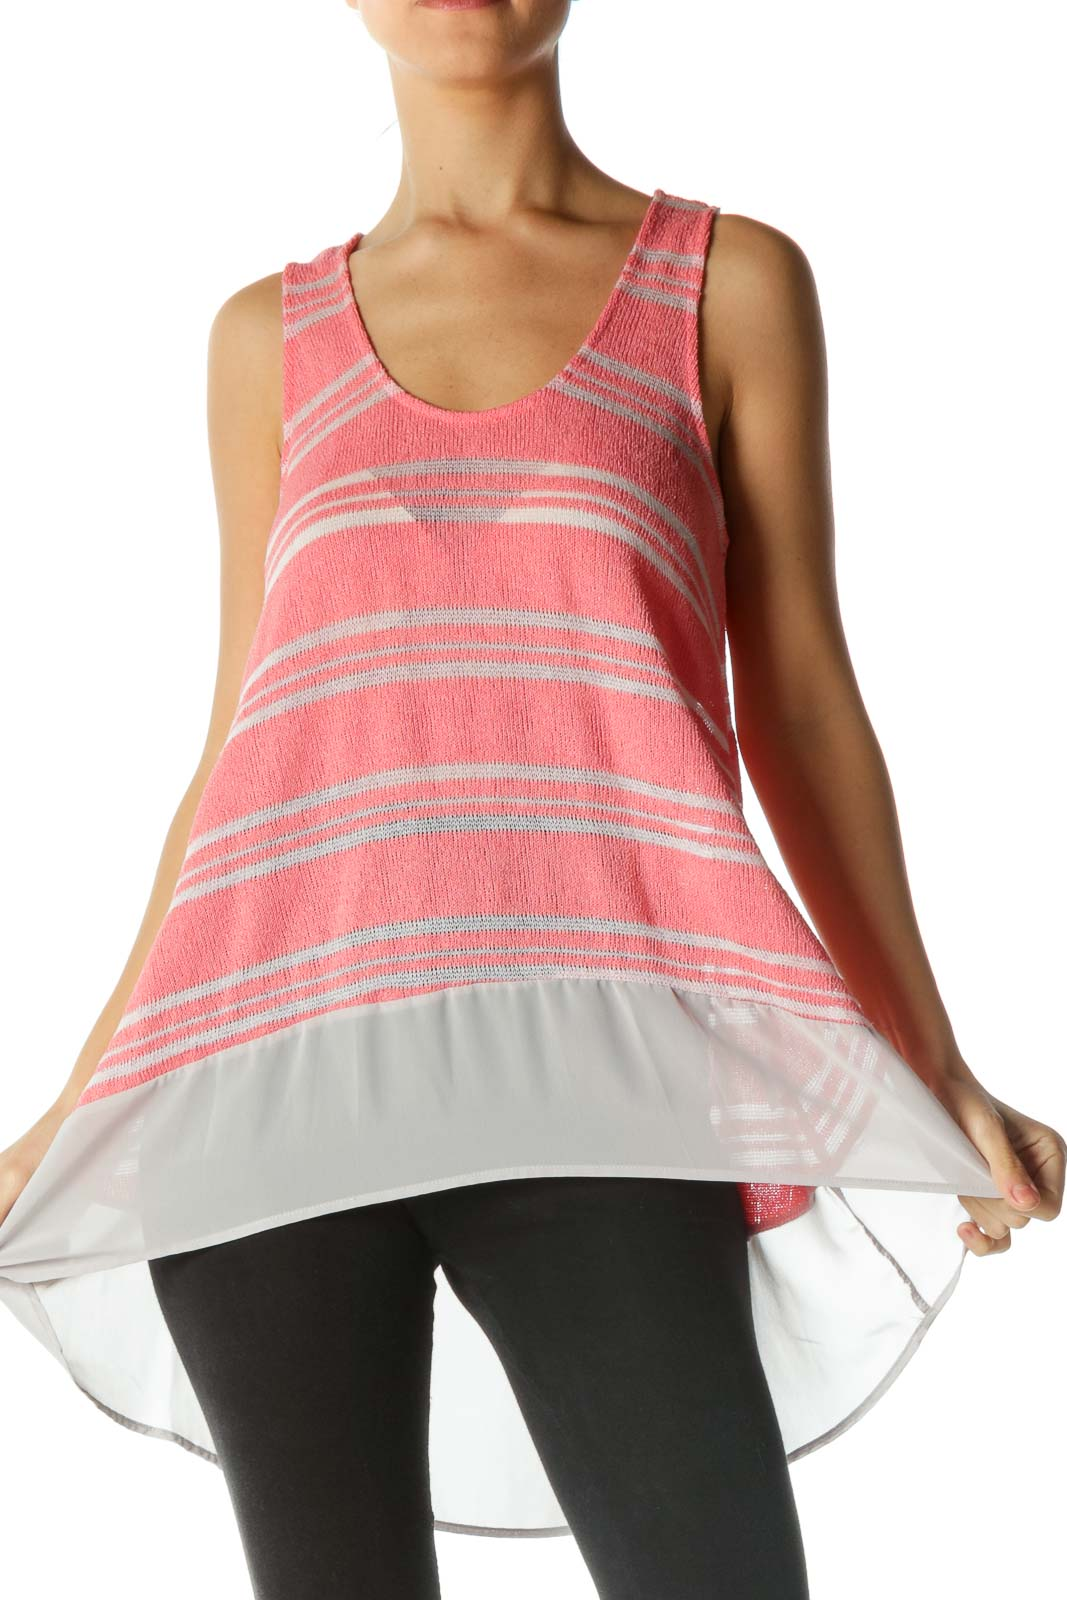 Gray and Pink Knit Striped Tank Top